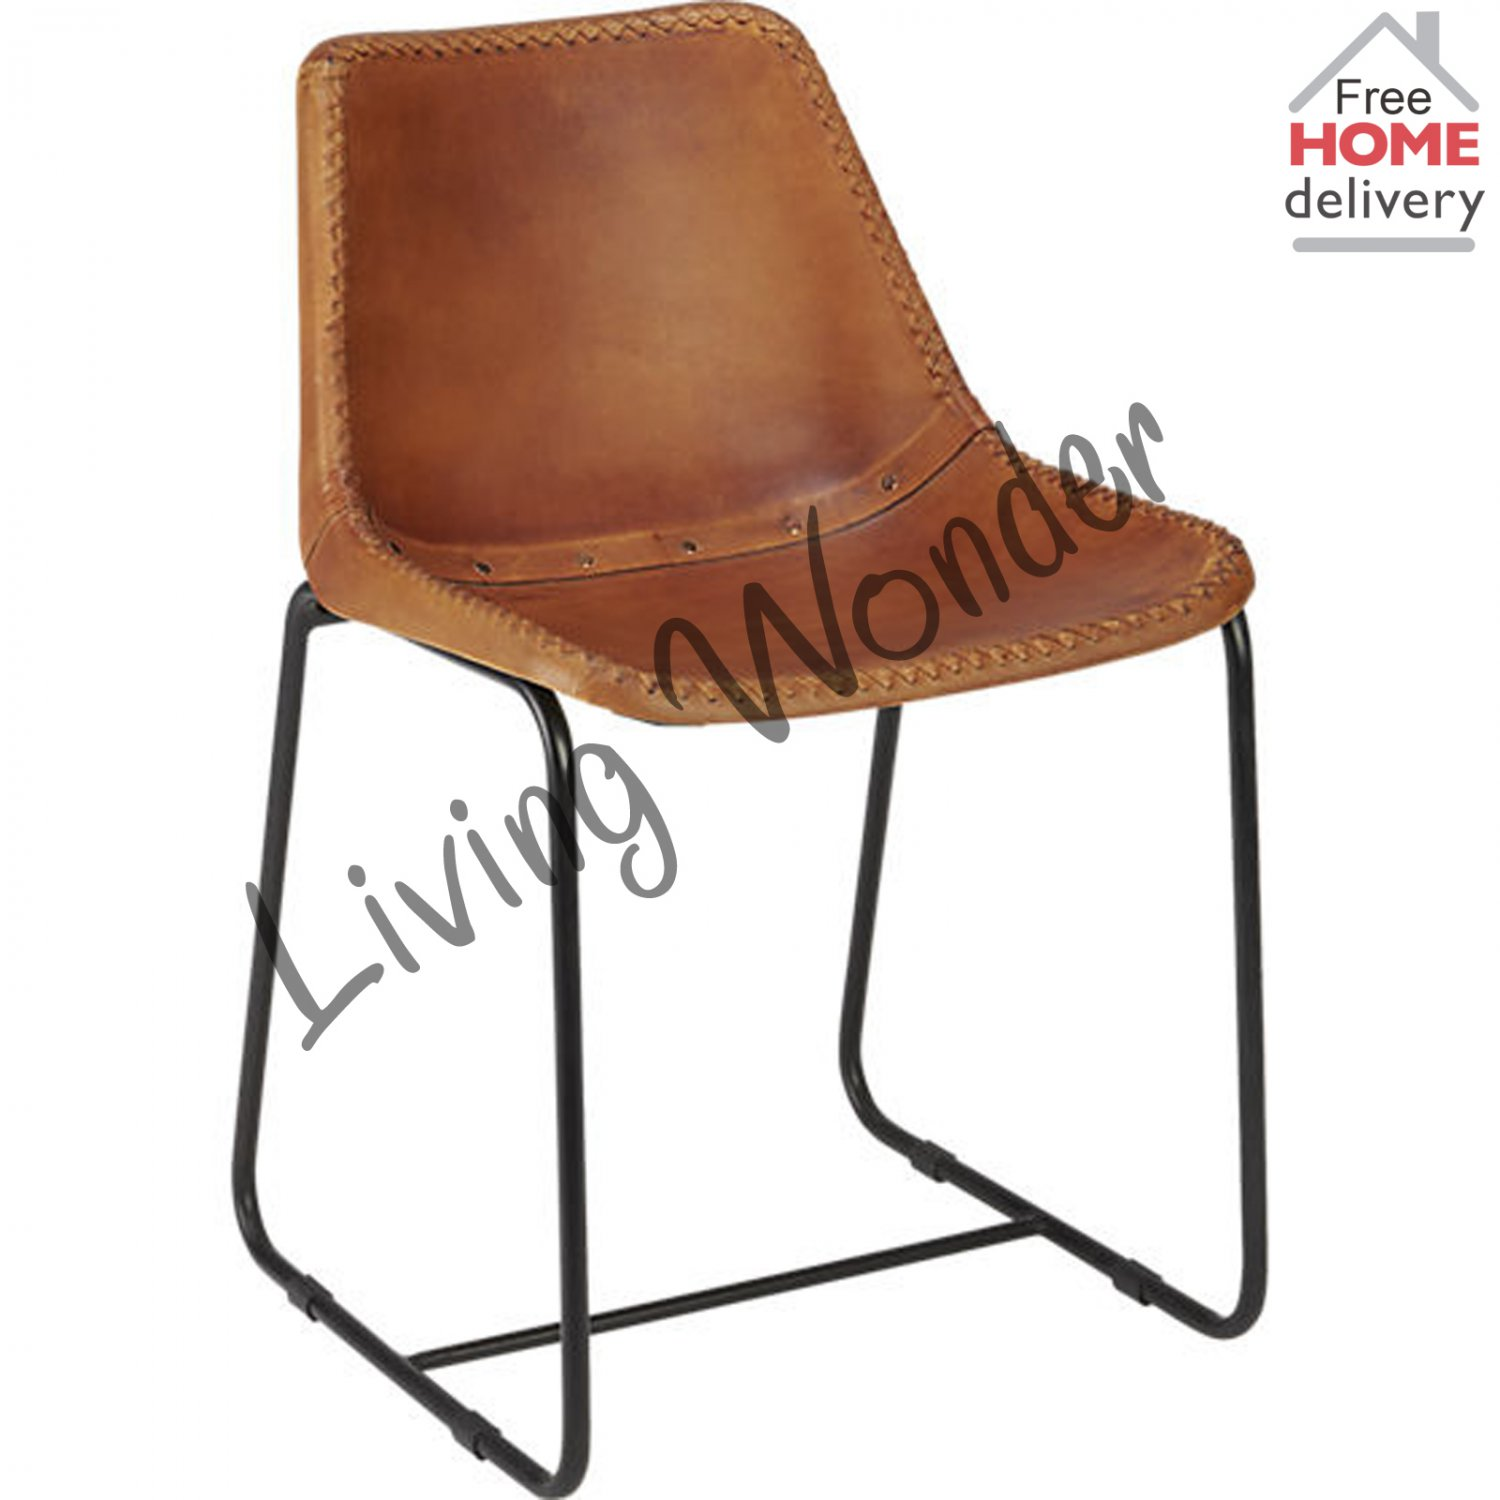 Industrial leather dining chair - Leather Office Chair Brown Dining Chairs Industrial Leather Dining Chair